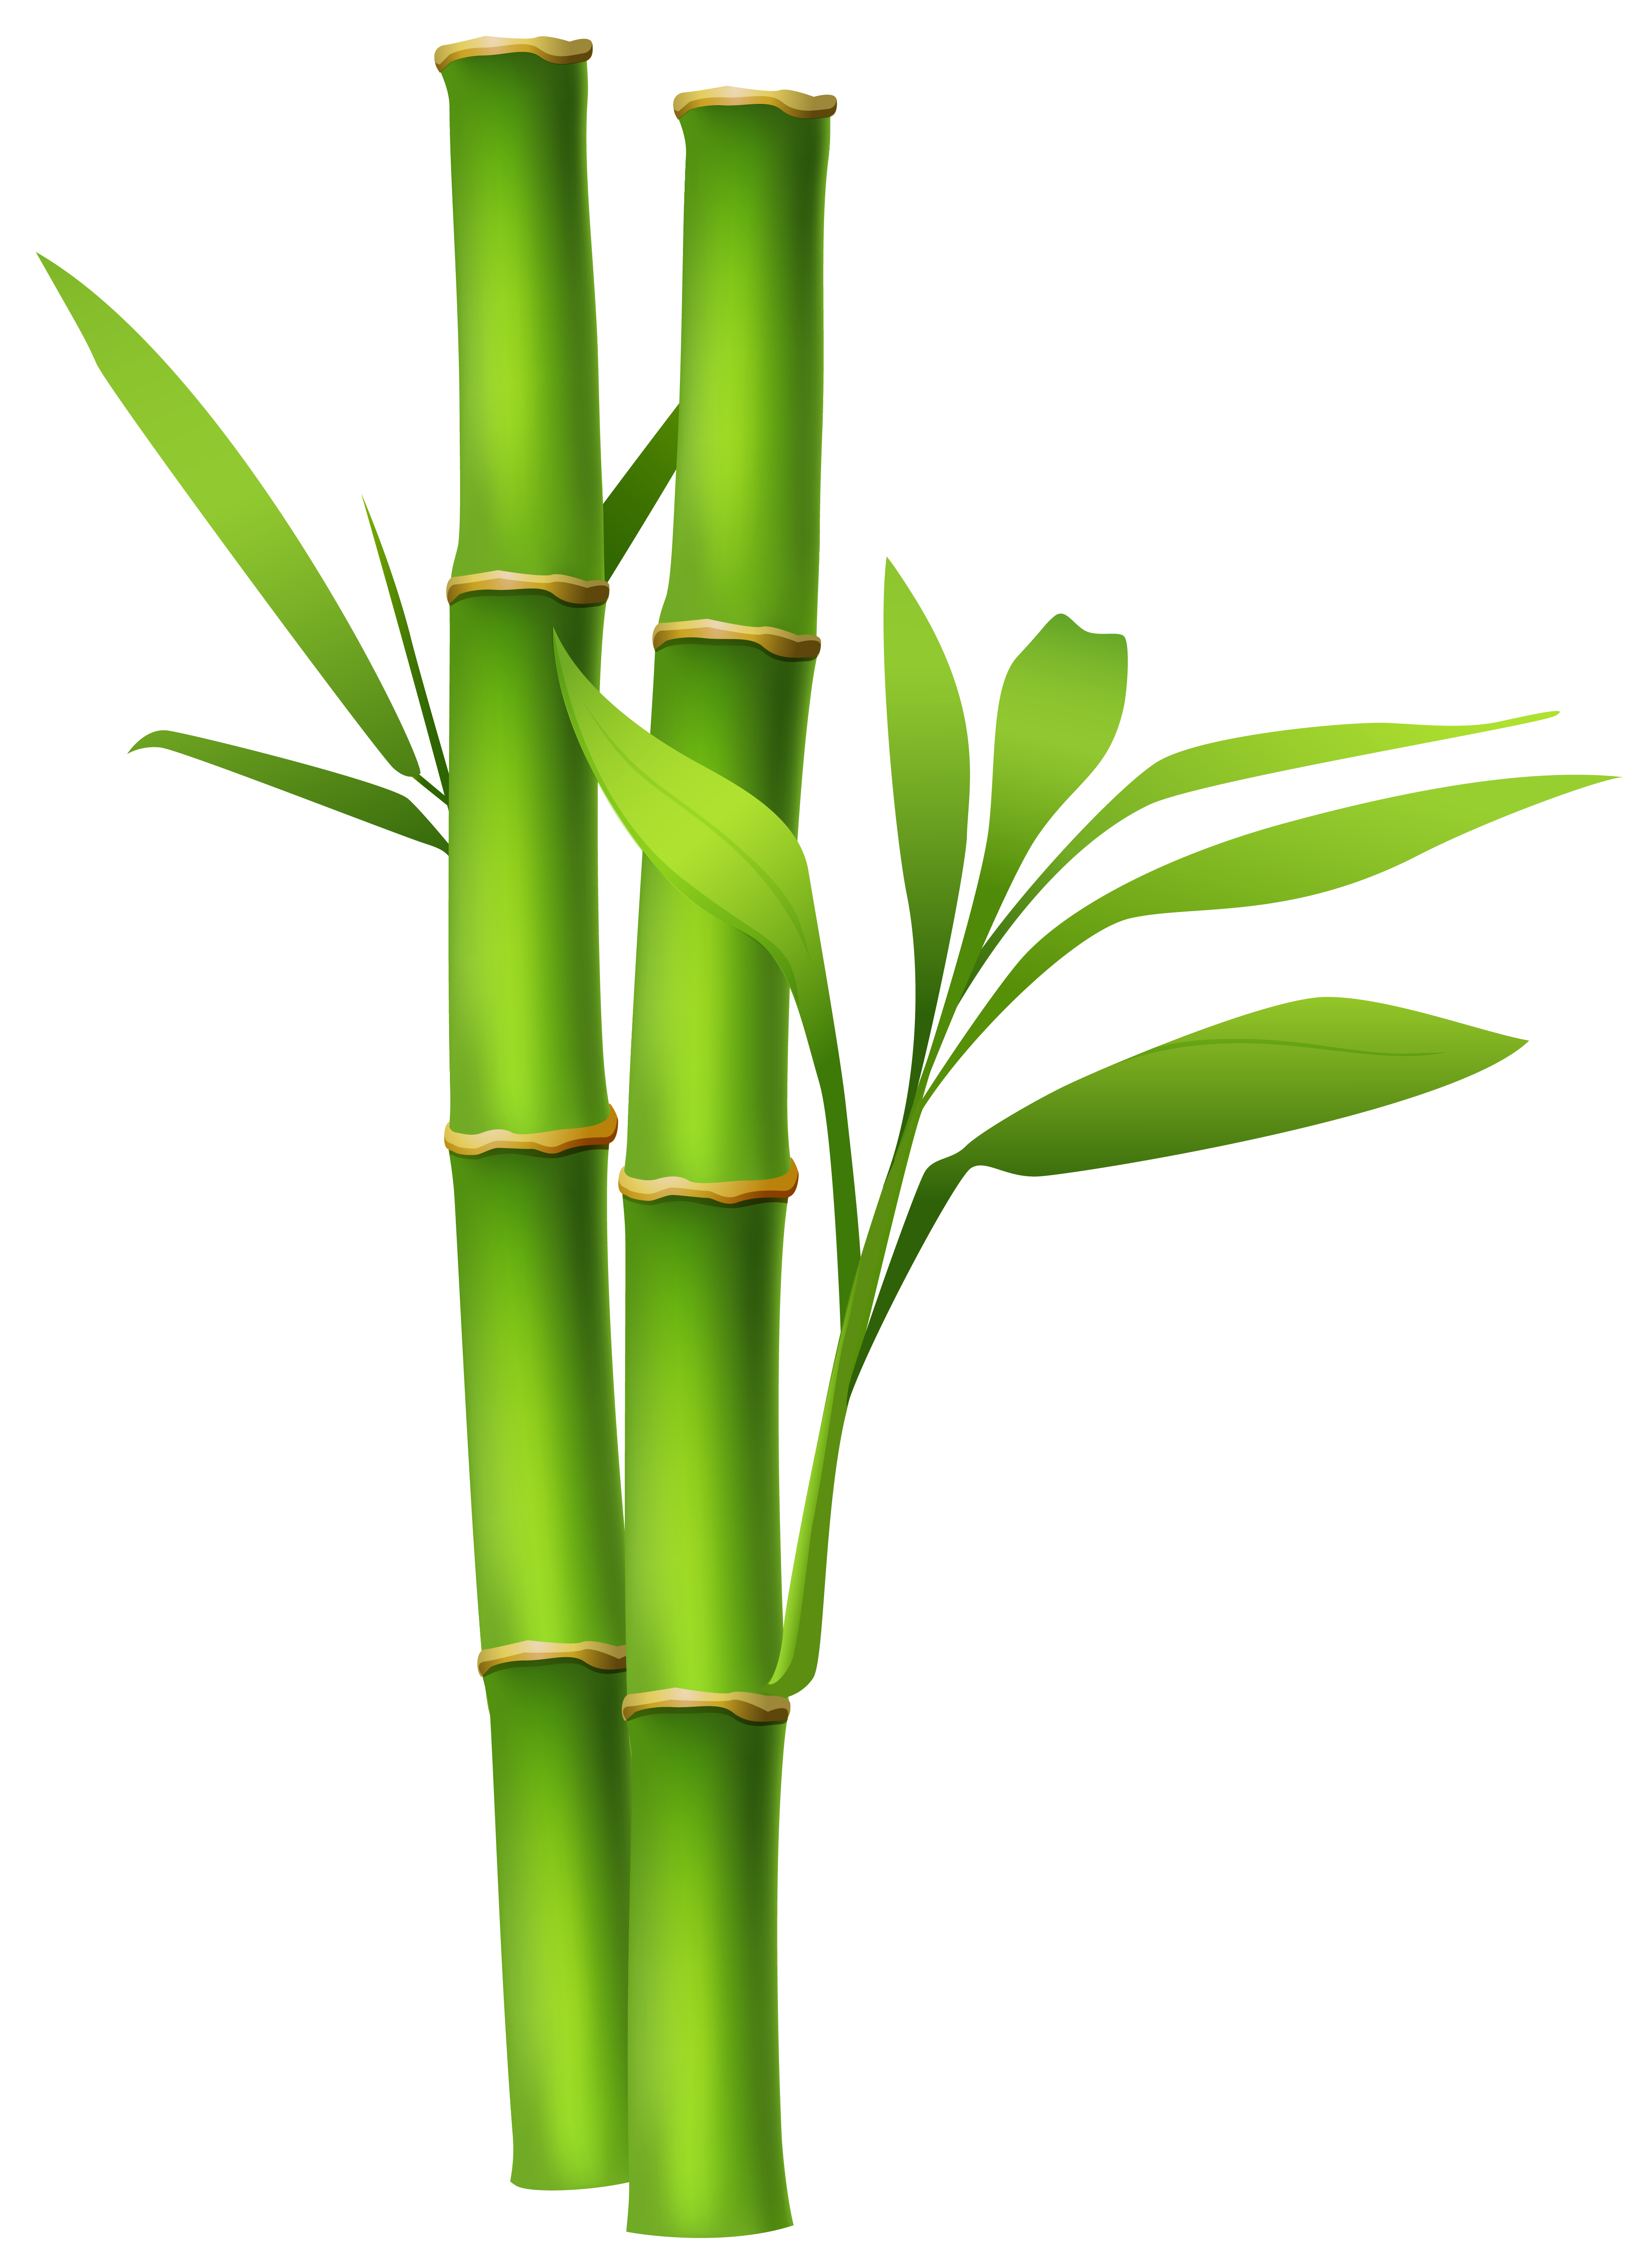 Clip art background cliparts. Bamboo clipart bamboo stalk